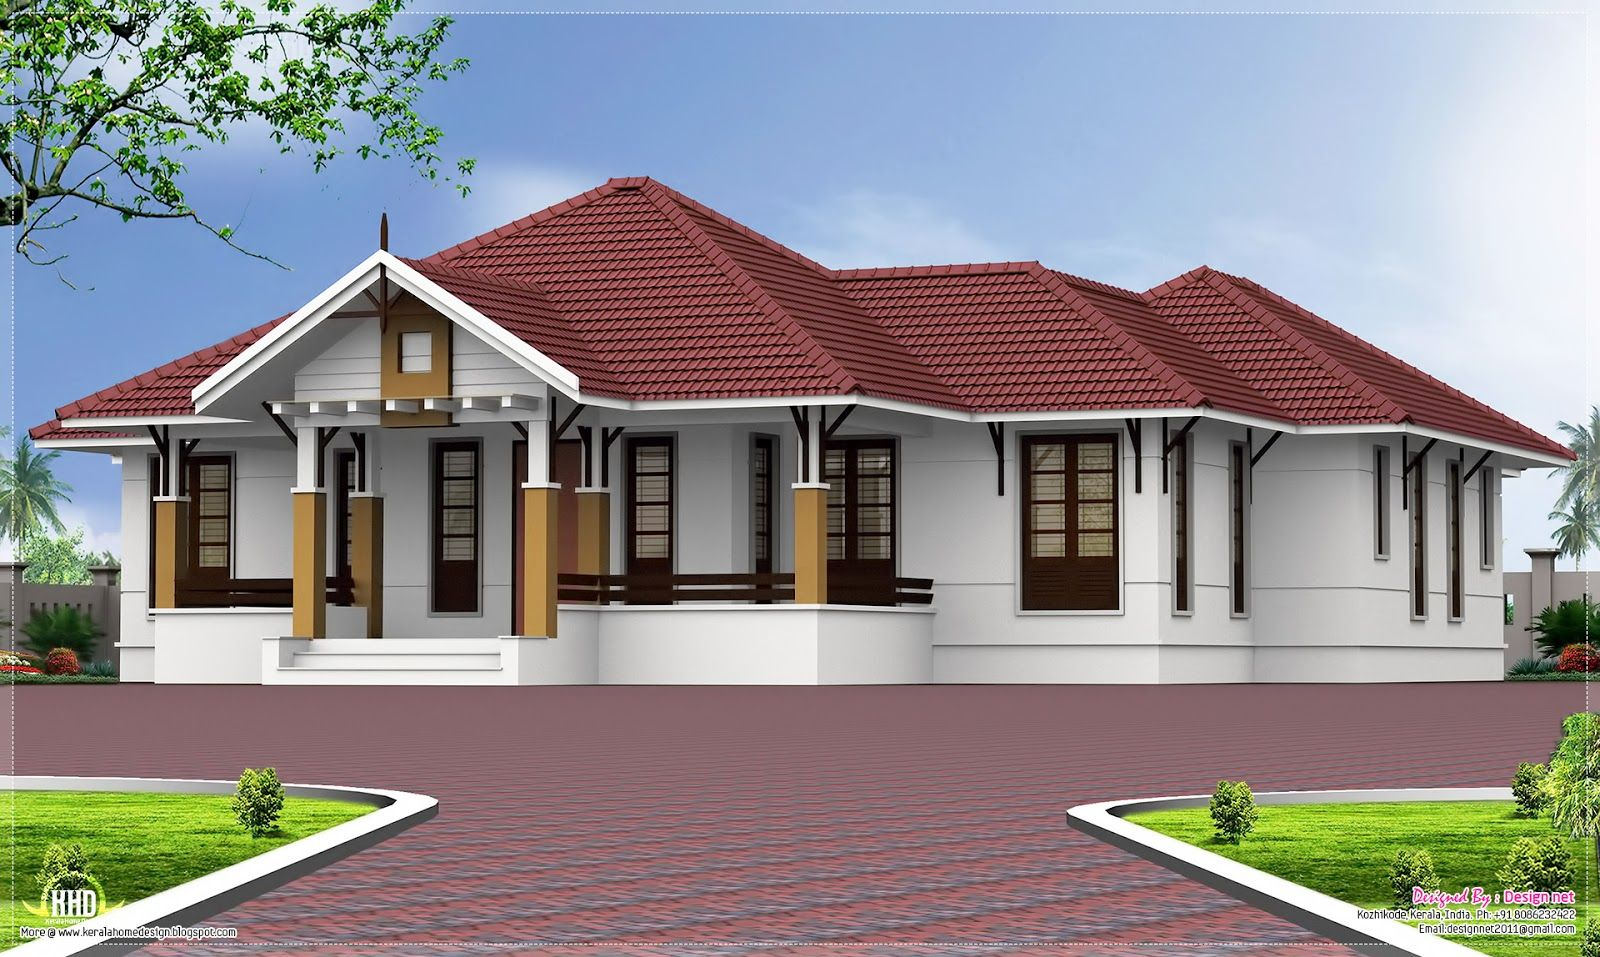 Image result for four bedroom houses Image